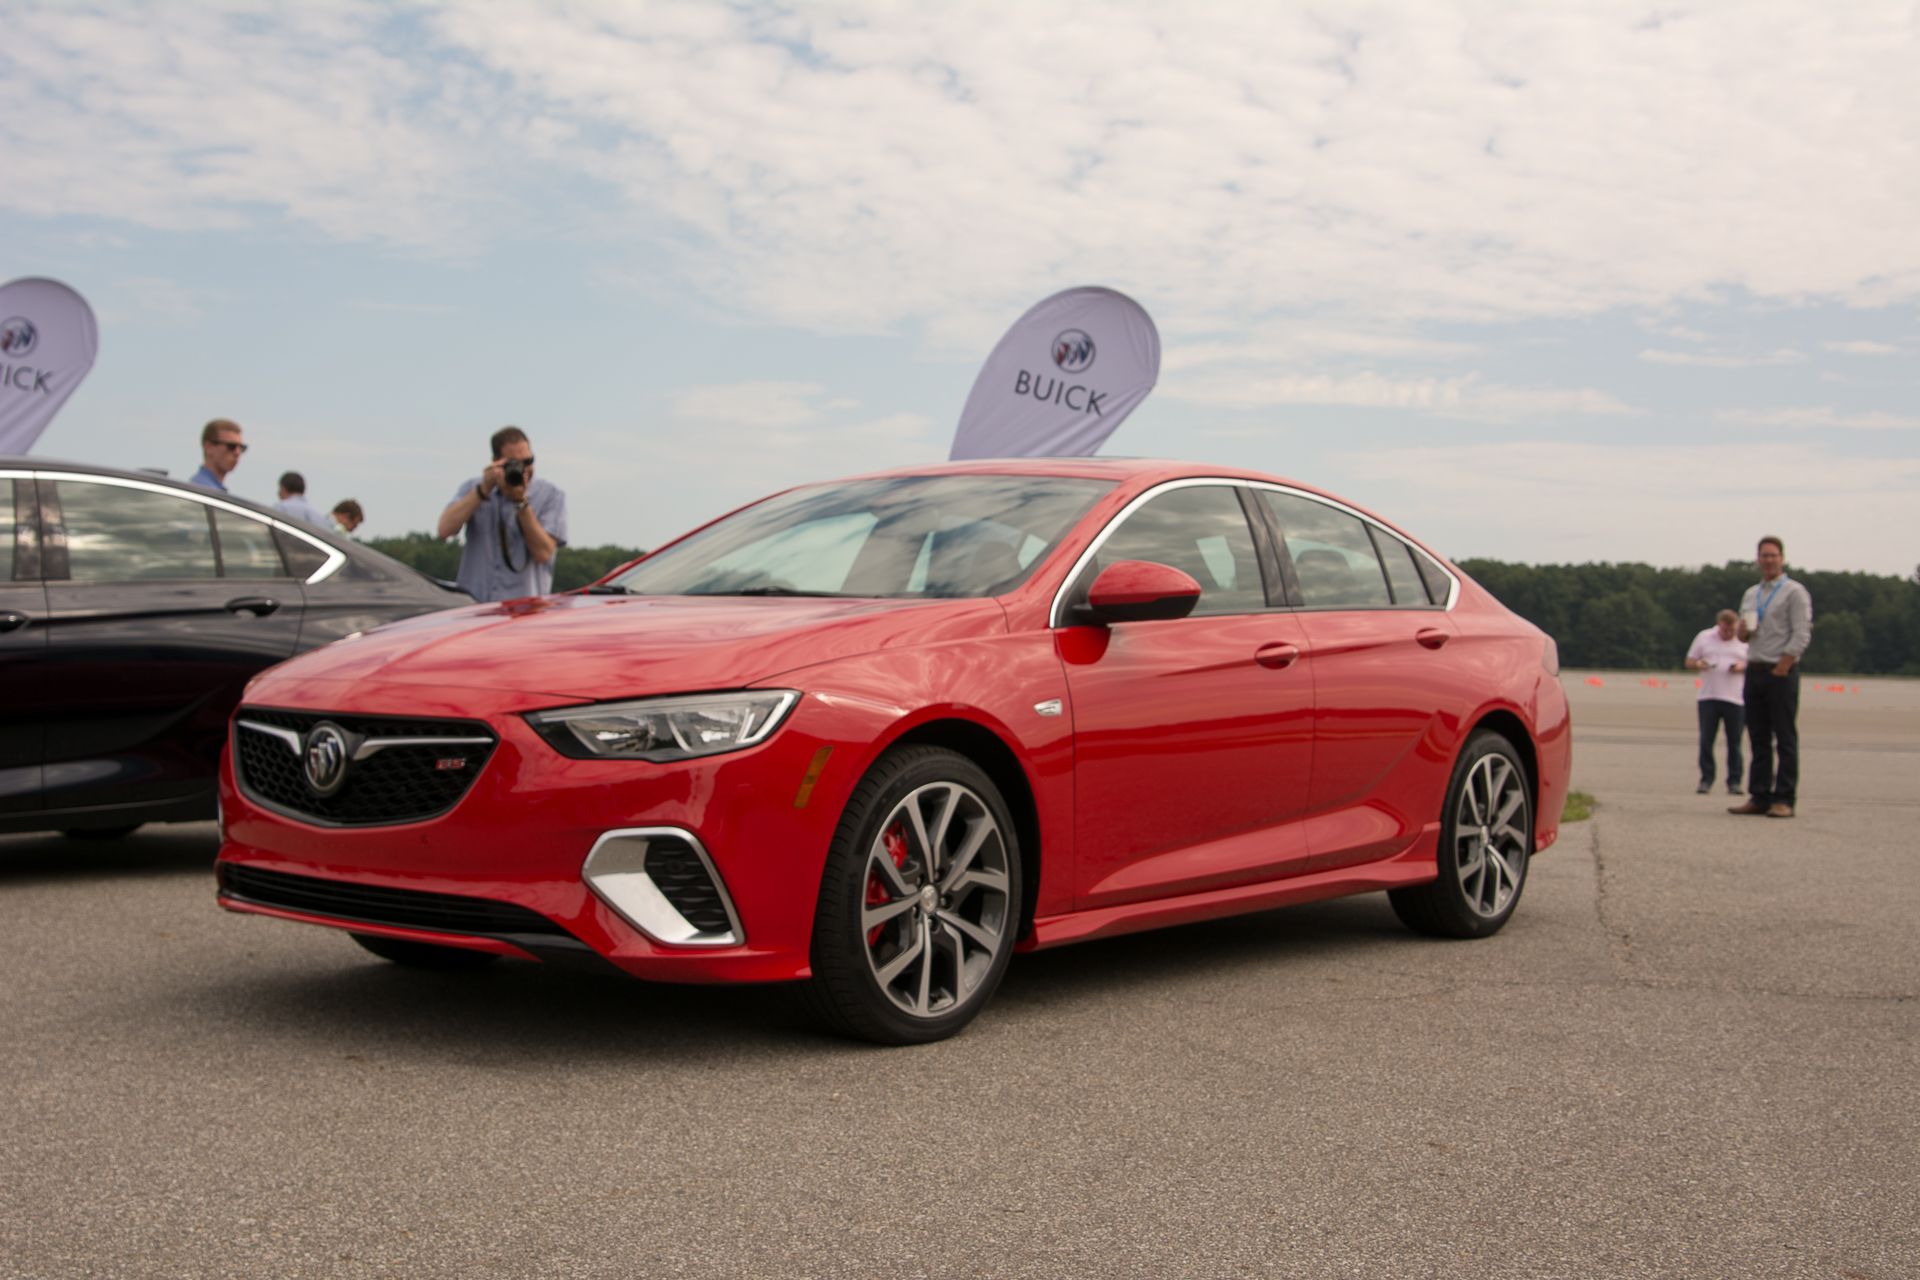 2018 Buick Regal GS debuts with 310-hp V-6, all-wheel drive